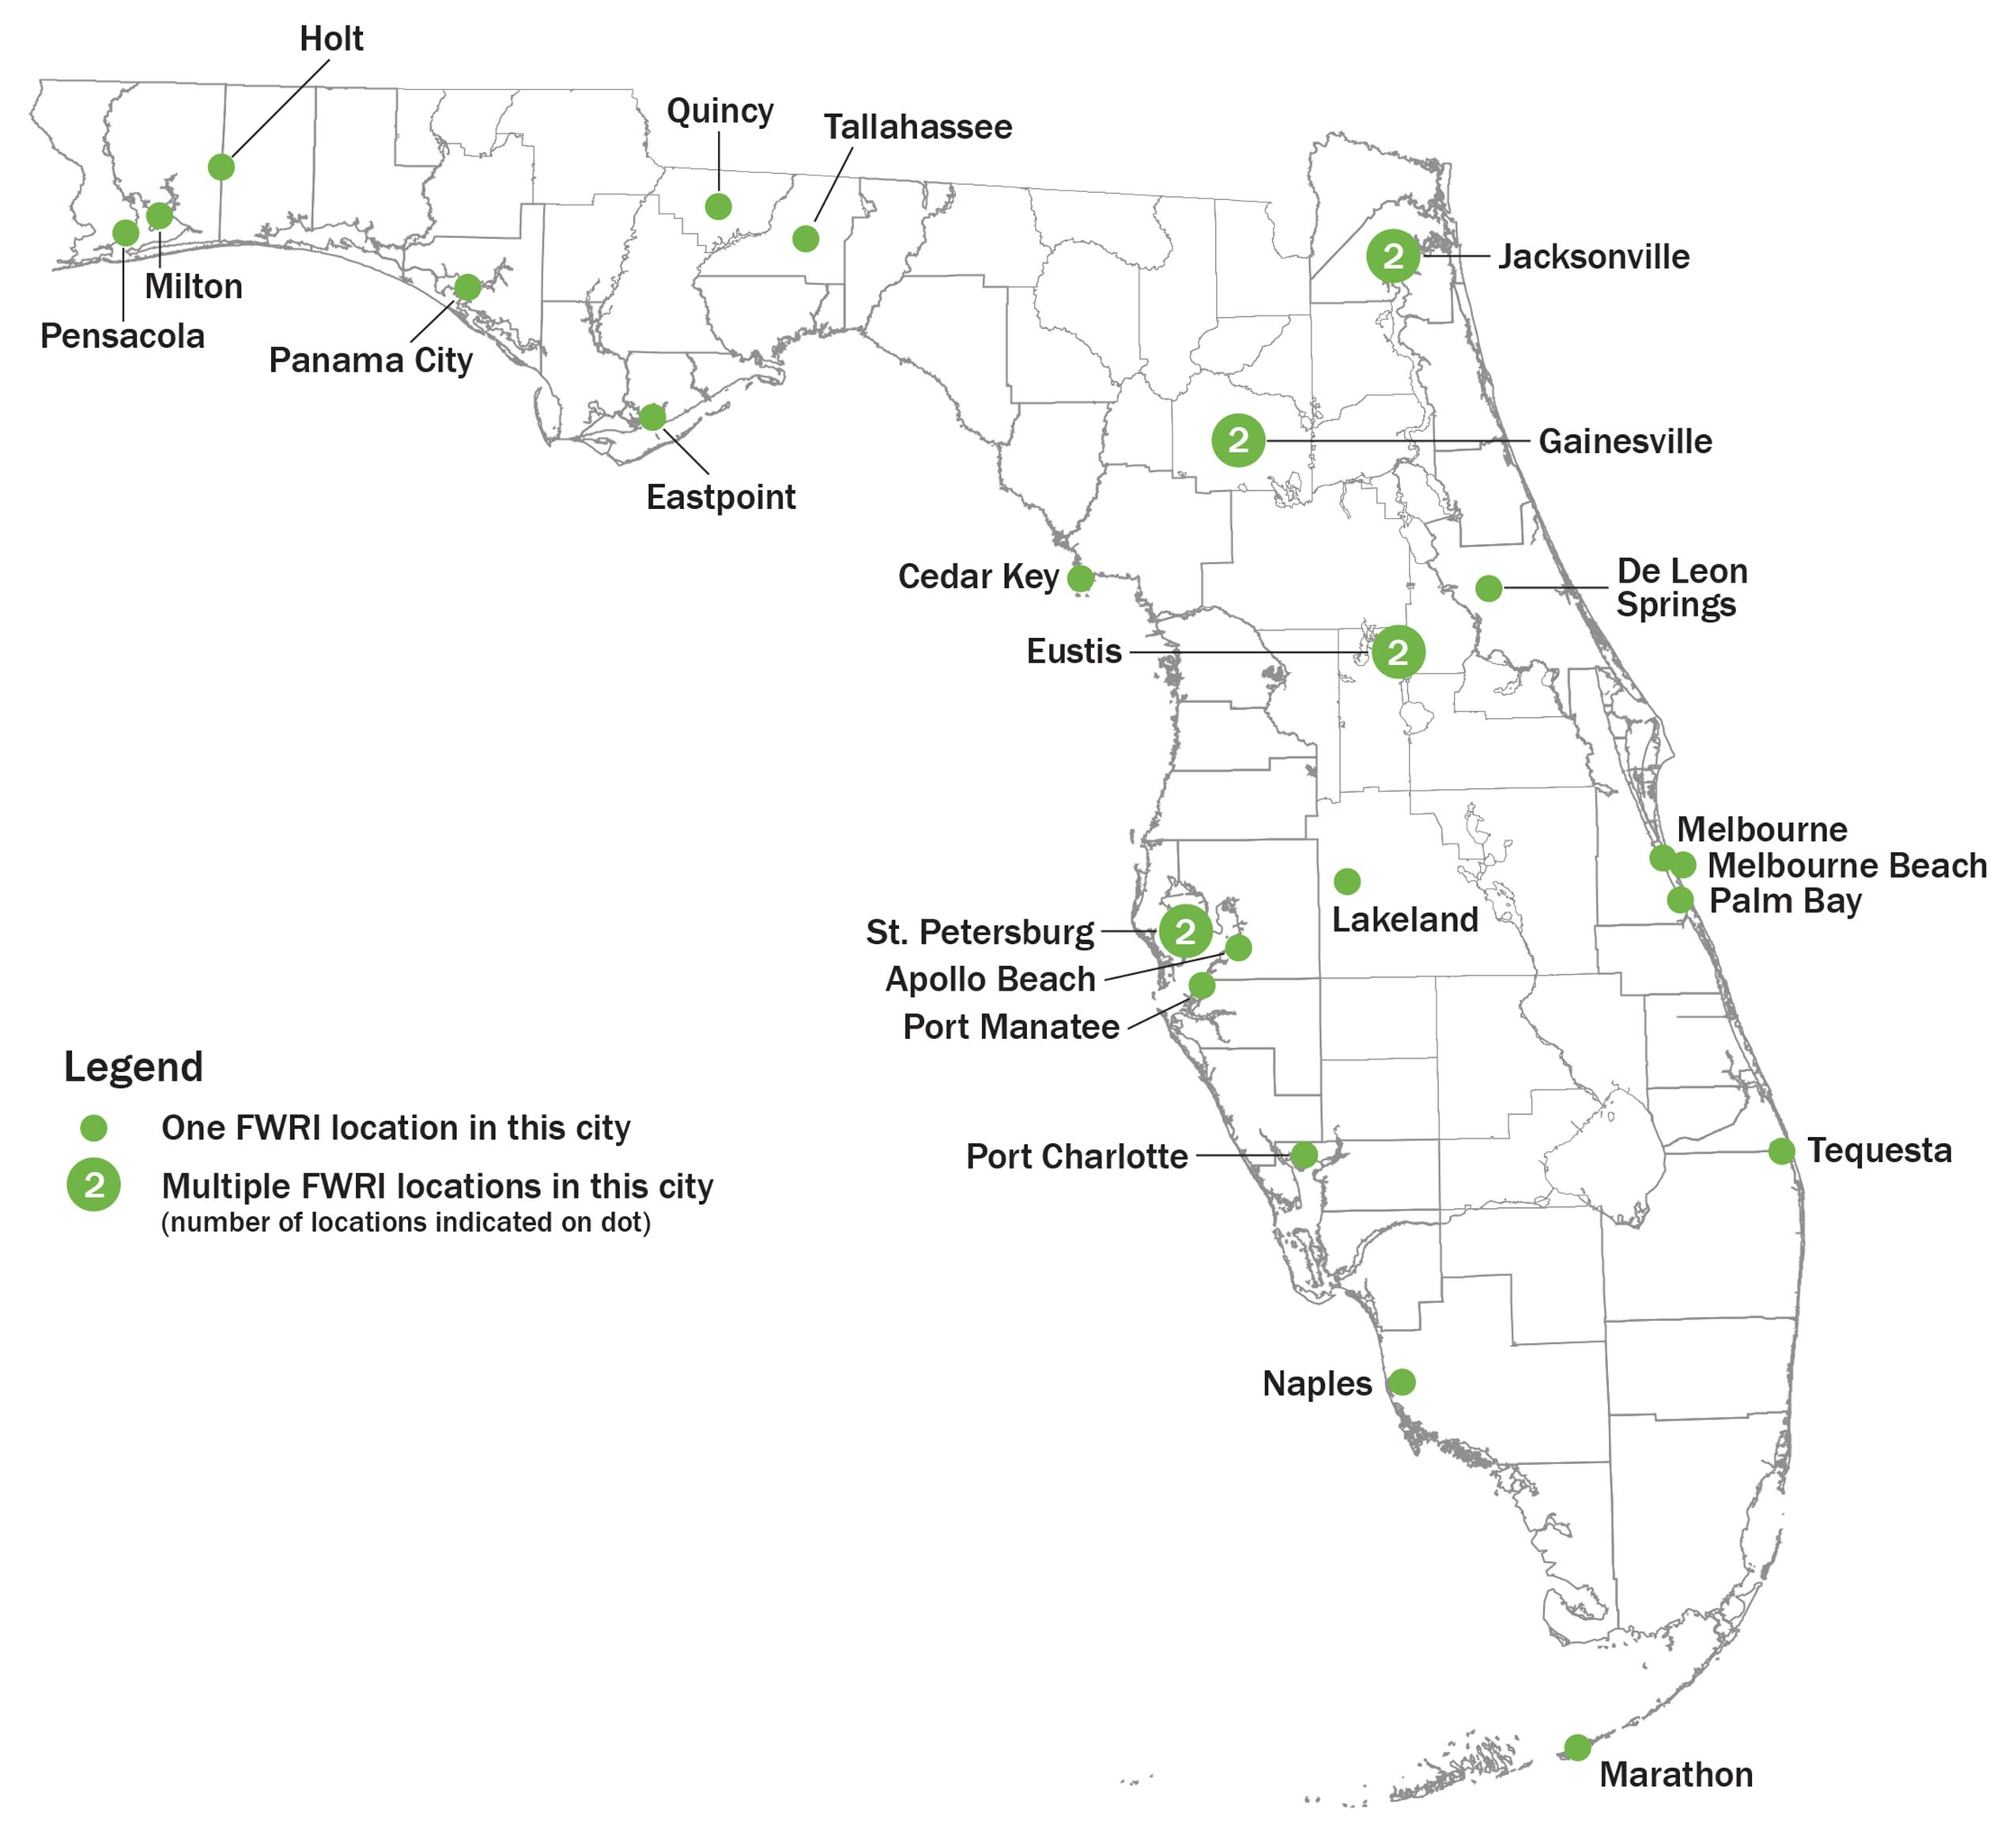 map of Florida with locations marked